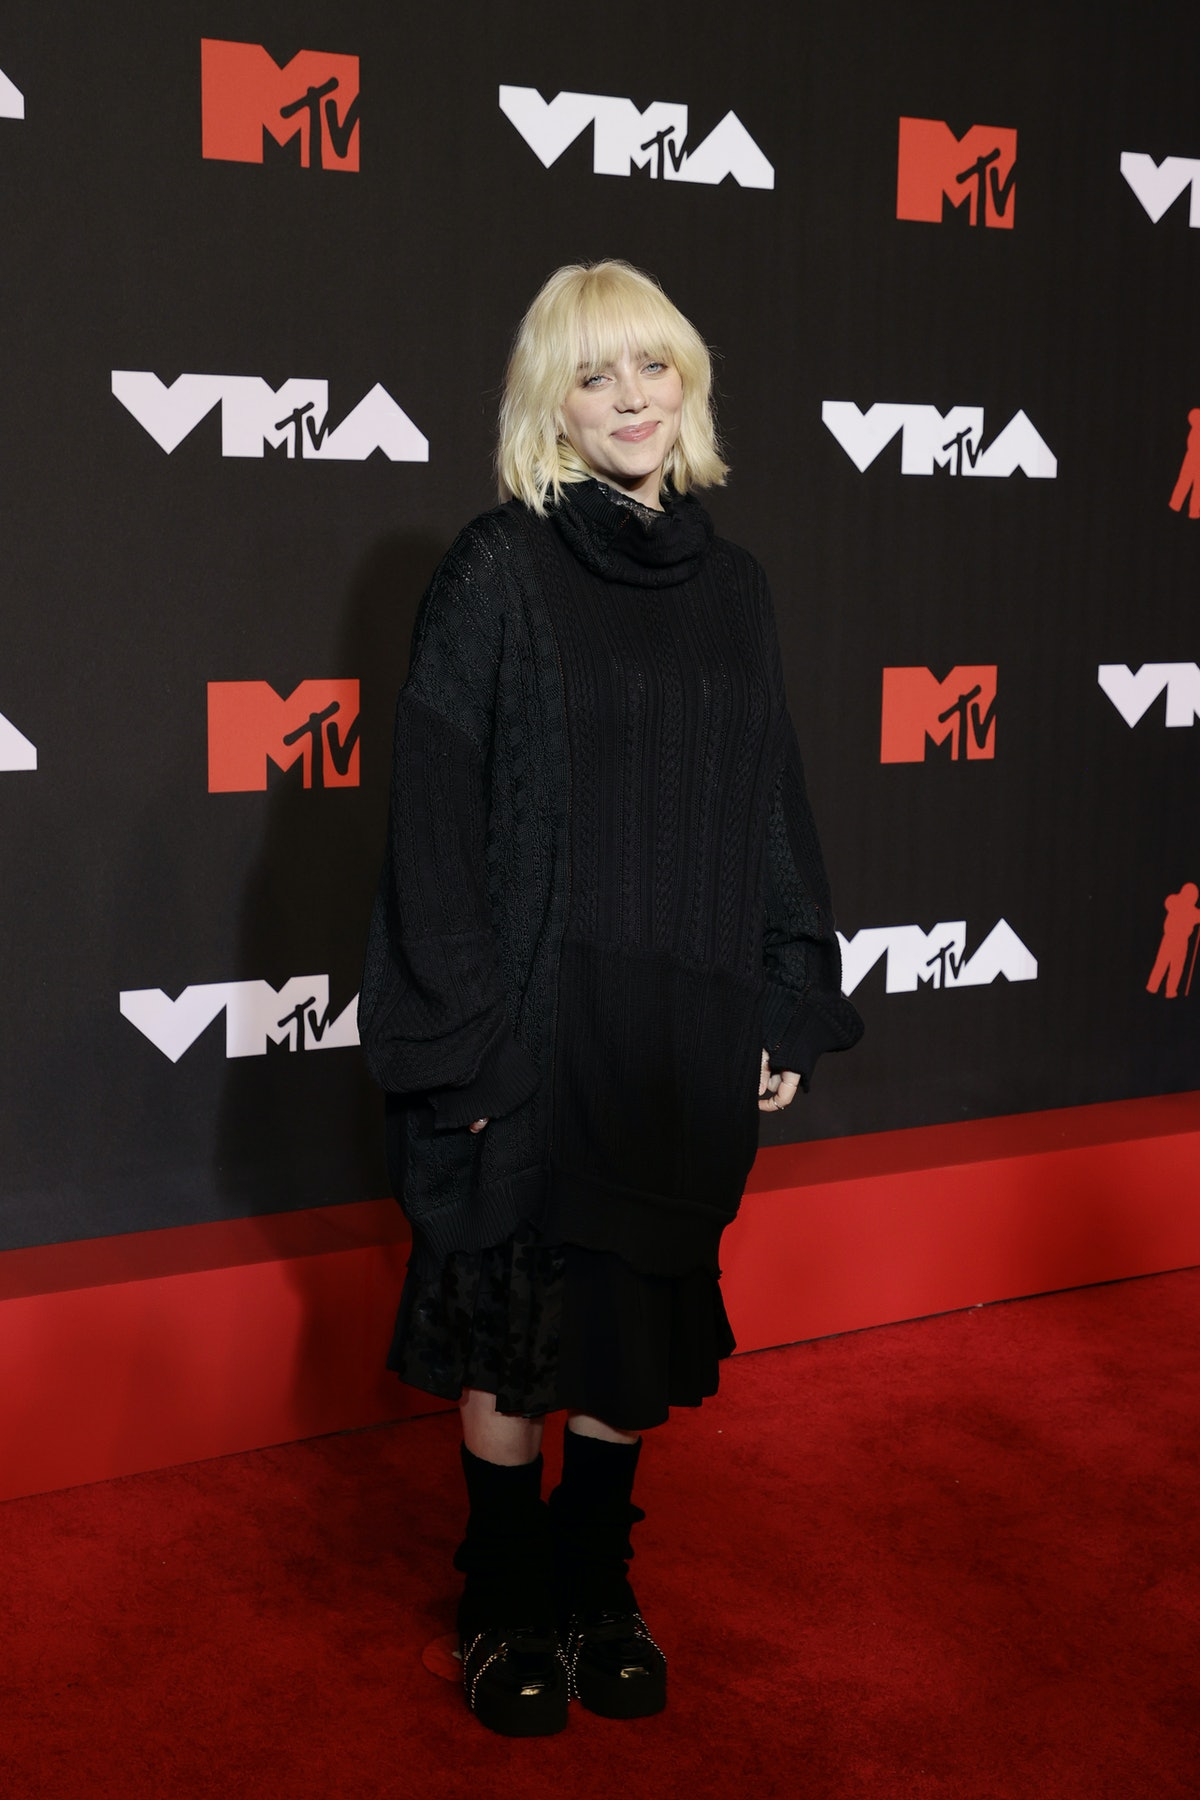 Billie Eilish's 2021 MTV VMAs look is an oversized sweater dress witha  chunky knit and turtleneck